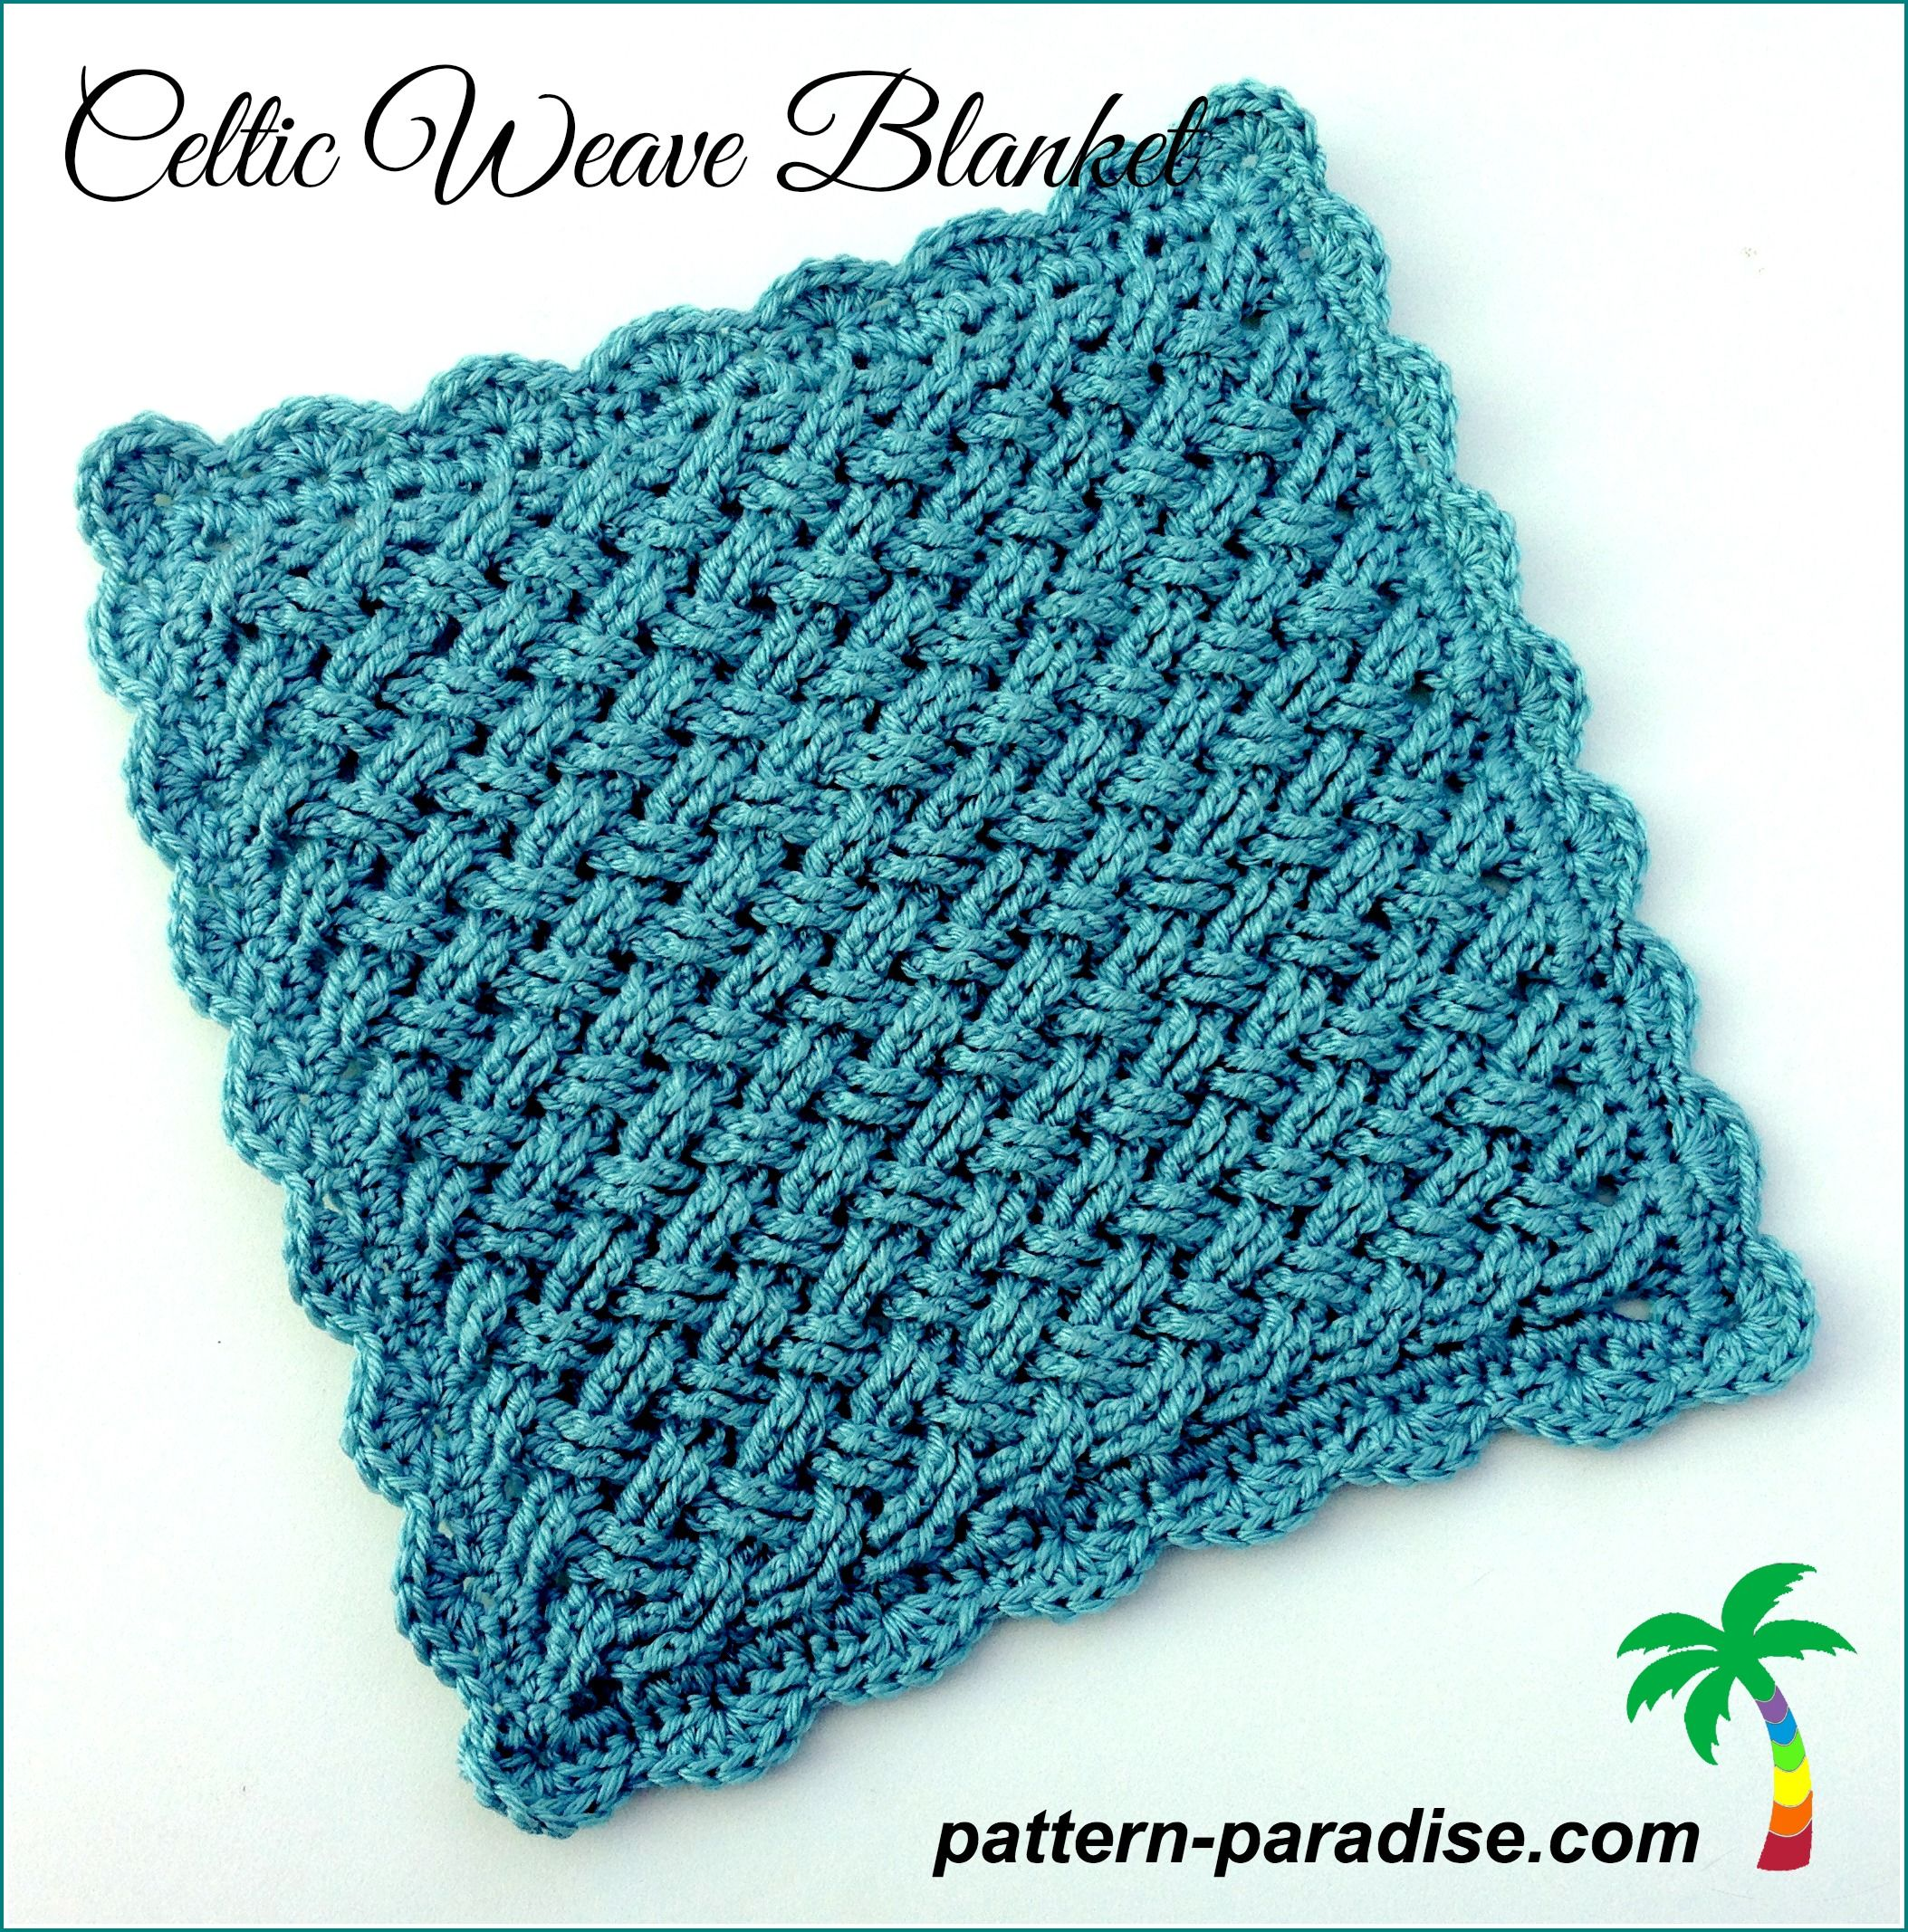 Celtic weave blanket free pattern crochet i love pinterest pattern paradise celtic weave blanket free crochet pattern in any size by maria bittner bankloansurffo Image collections